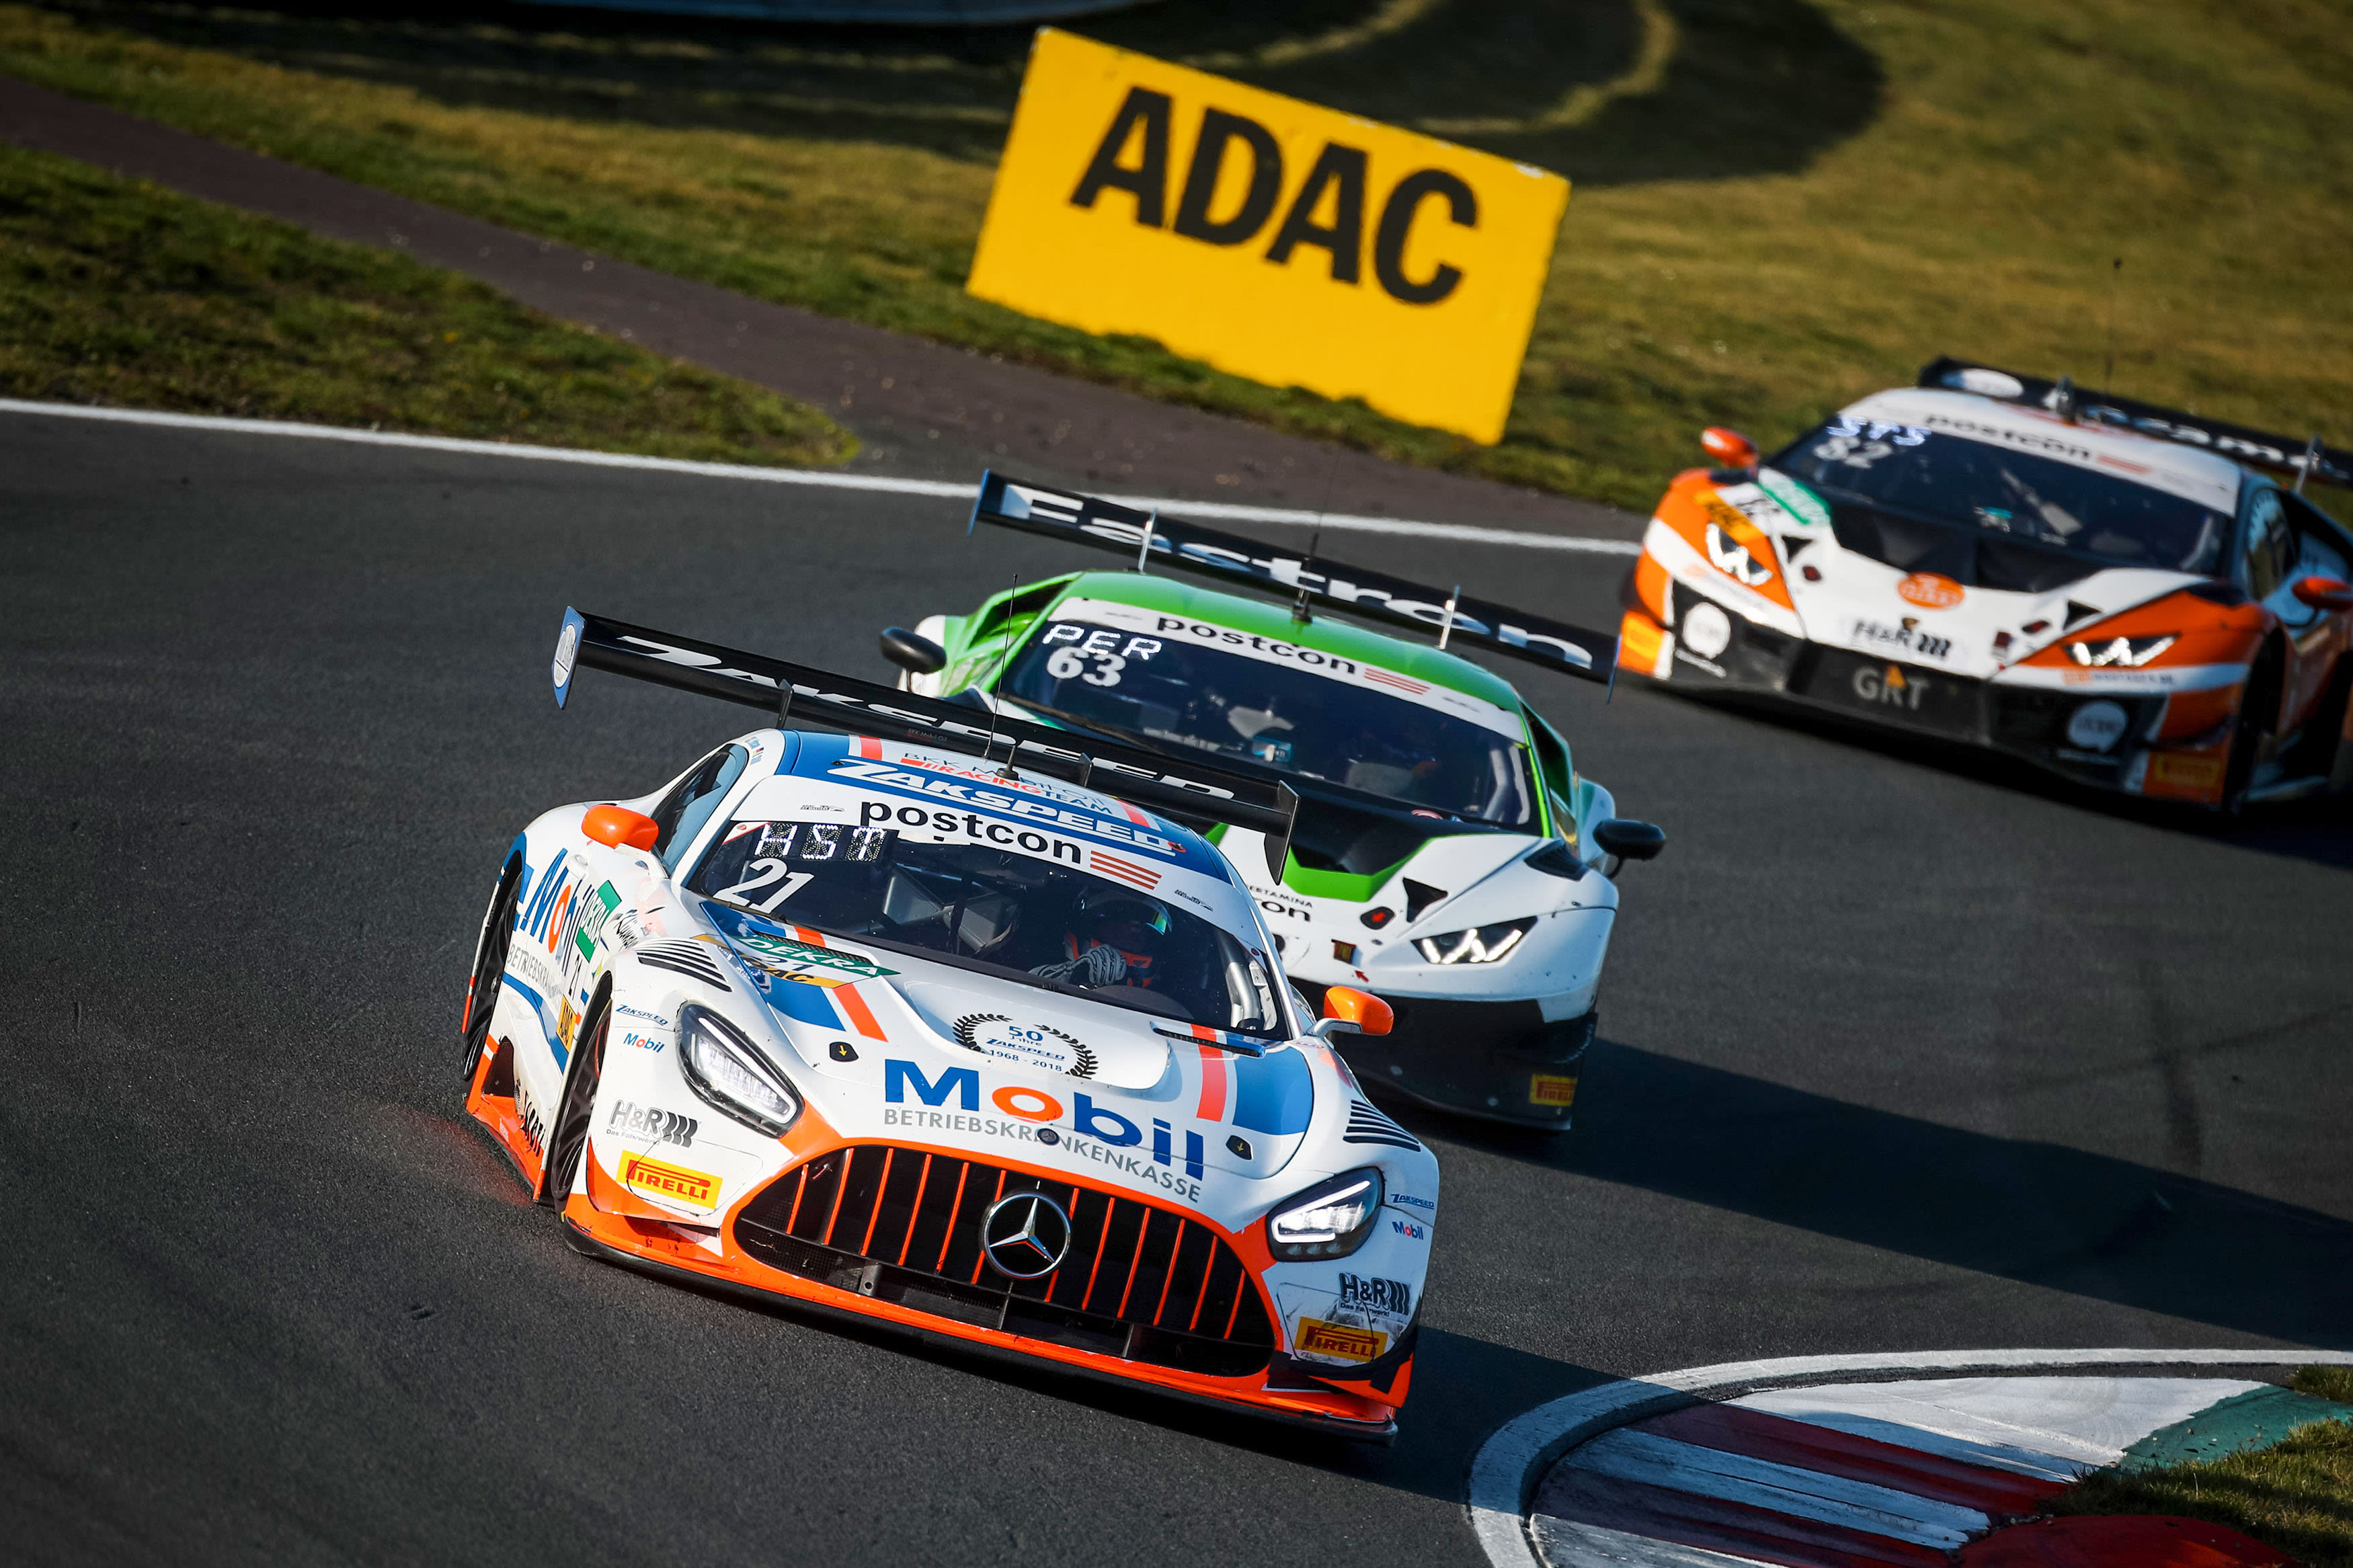 Former champion Jules Gounon returns to the ADAC GT Masters with Zakspeed